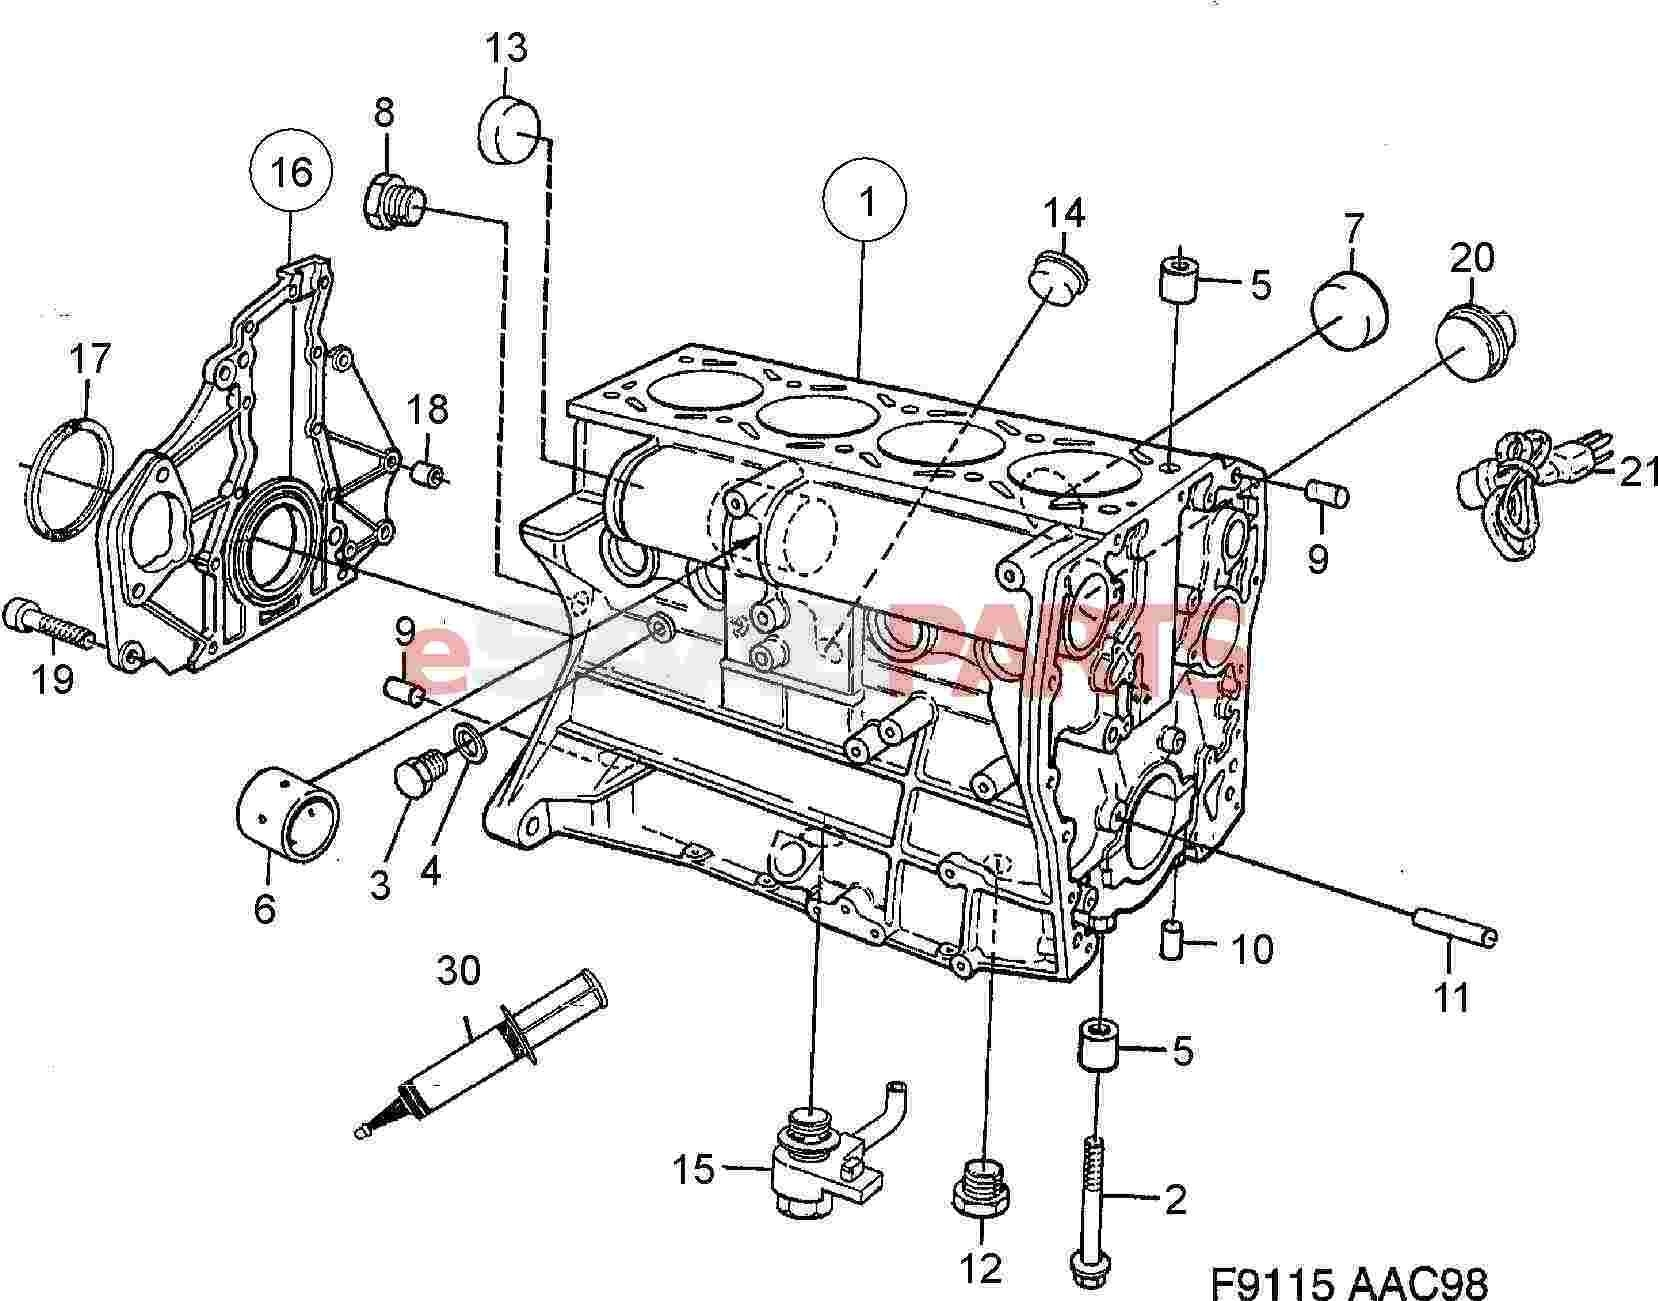 Saab 9 3 Arc Parts Diagram • Wiring Diagram For Free